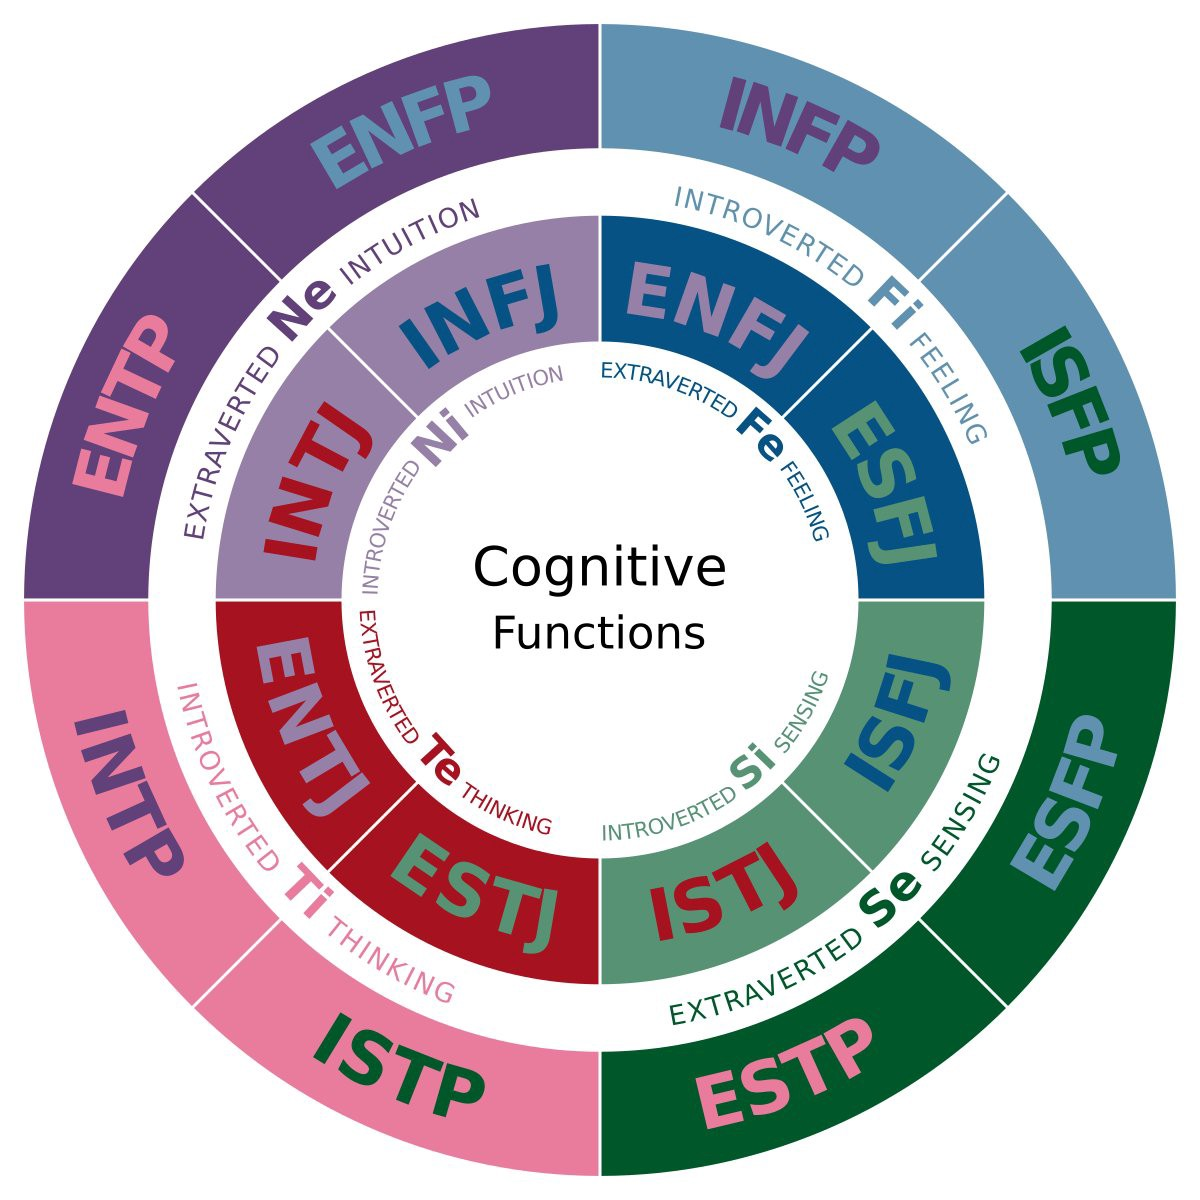 A diagram depicting the cognitive functions of each Myers-Briggs personality type. Author: JakeBeech